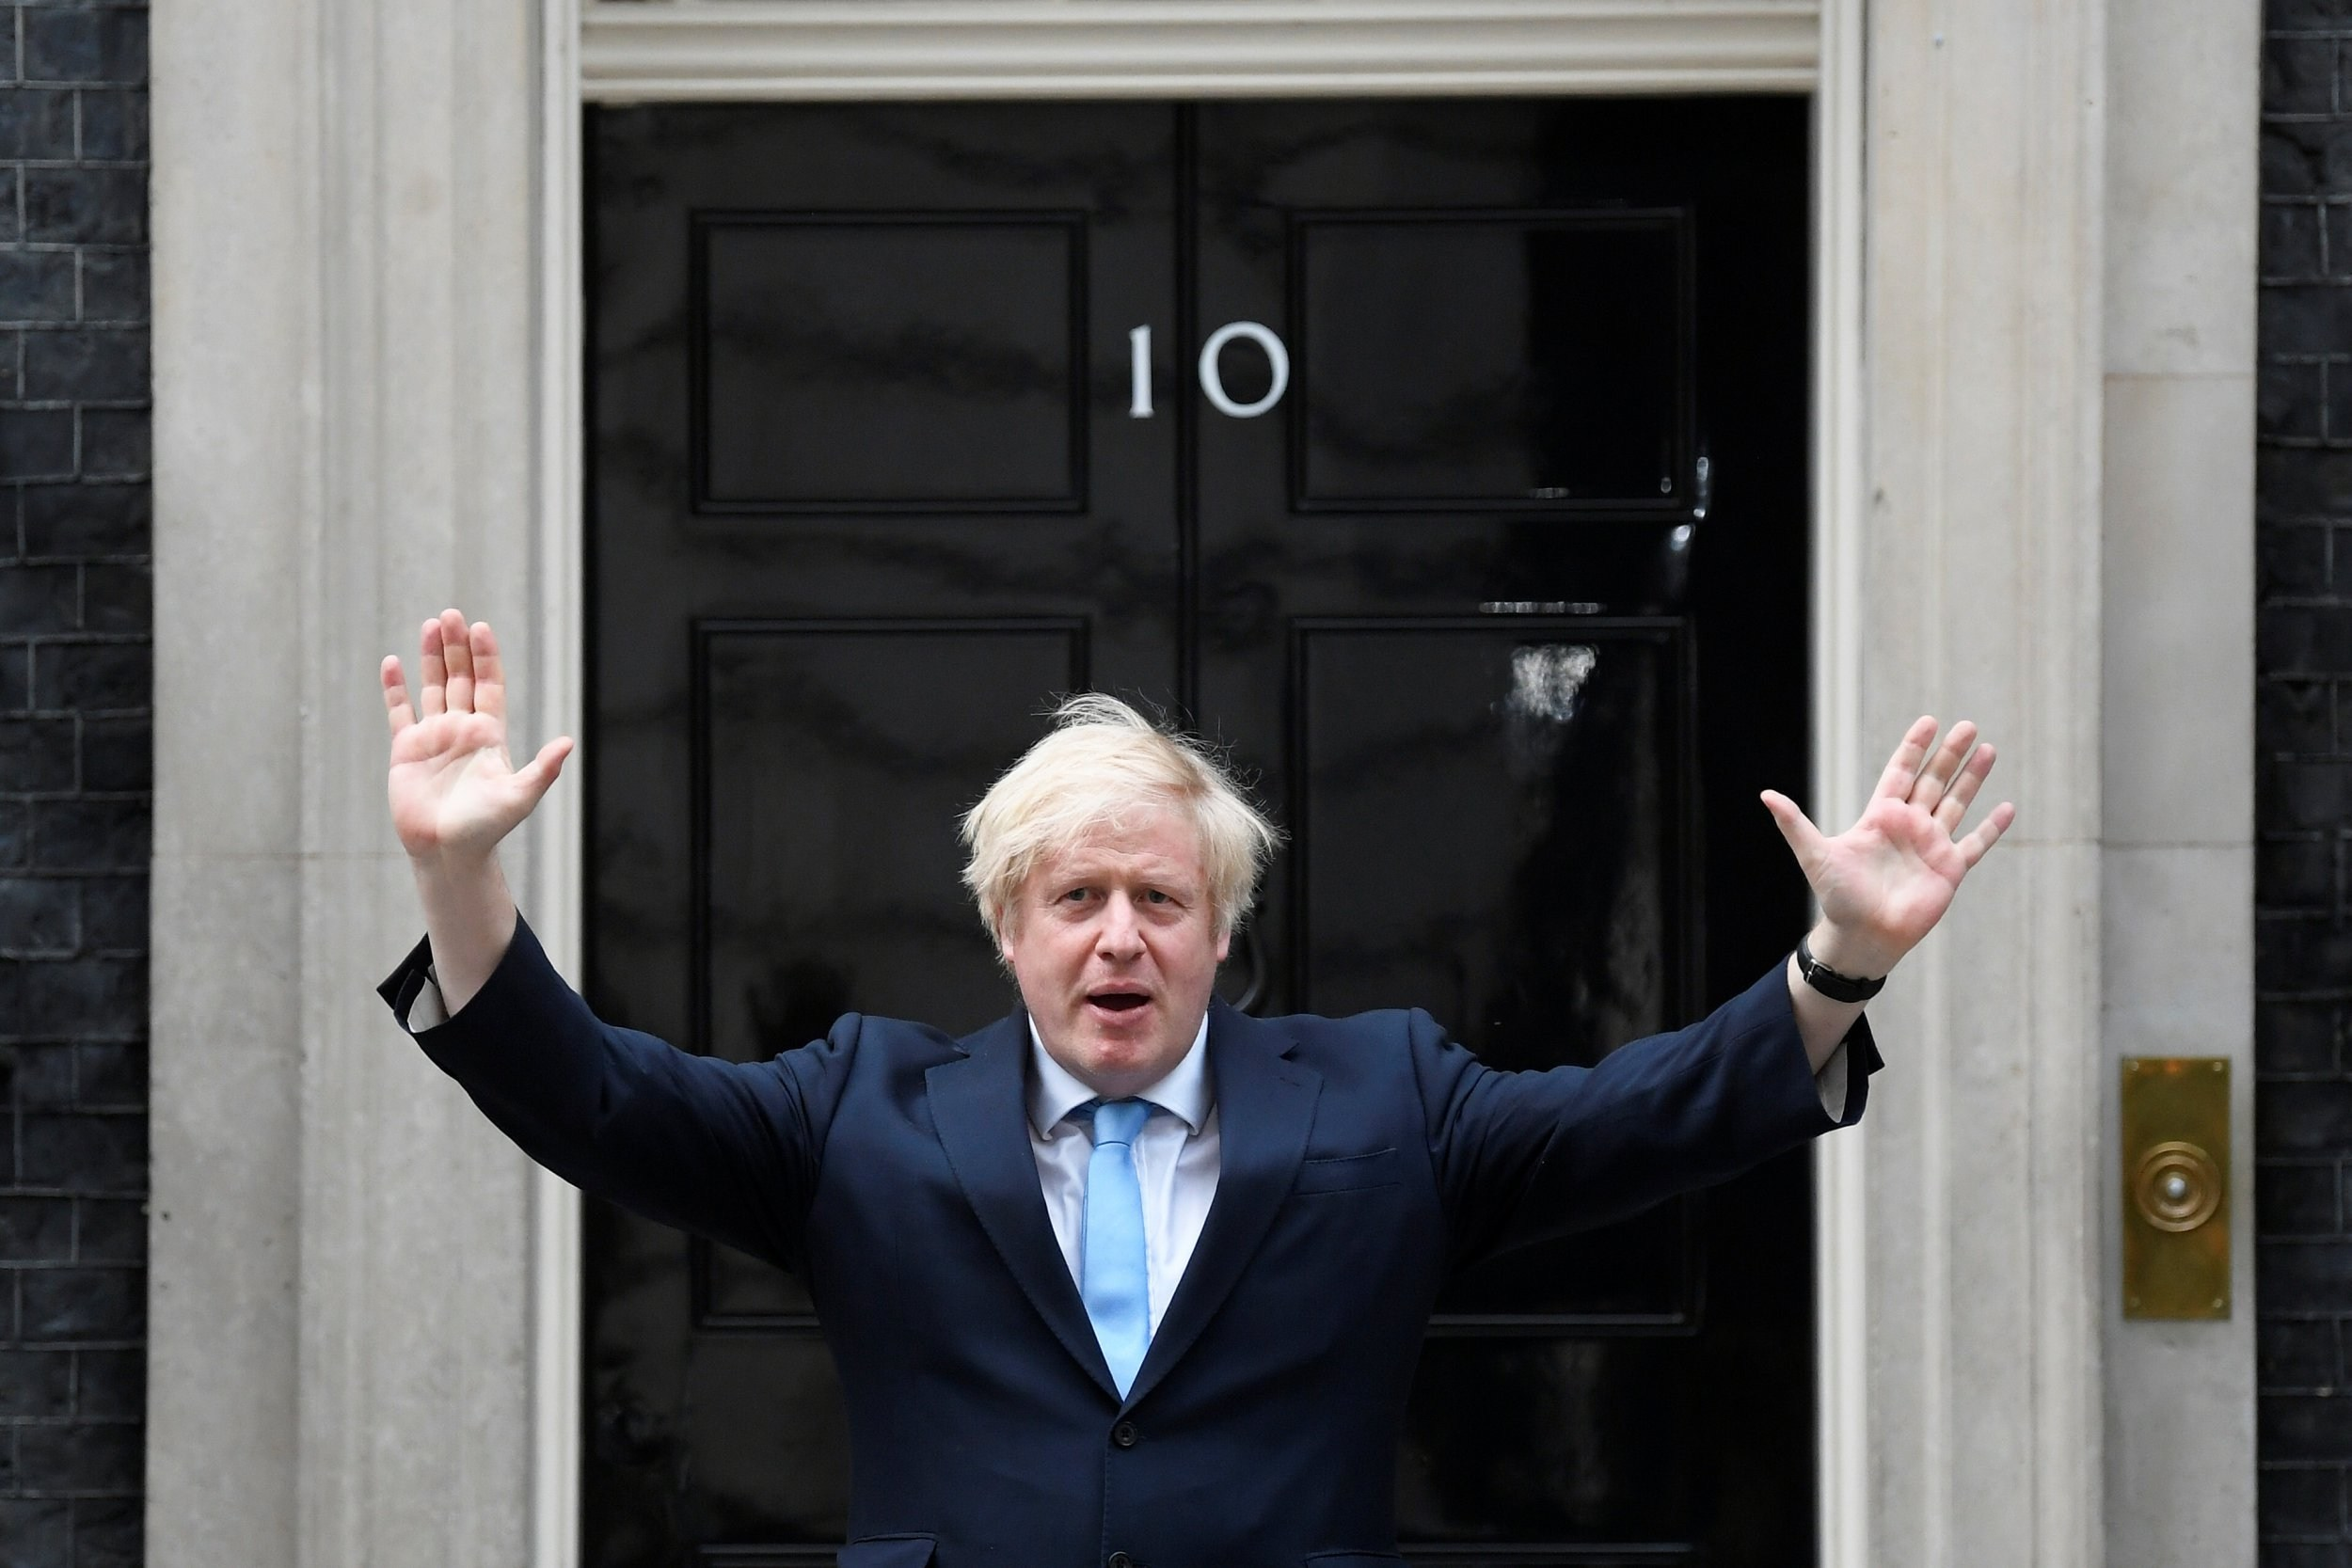 Boris Johnson's Government is selfishly settling old scores instead of helping Londoners in need